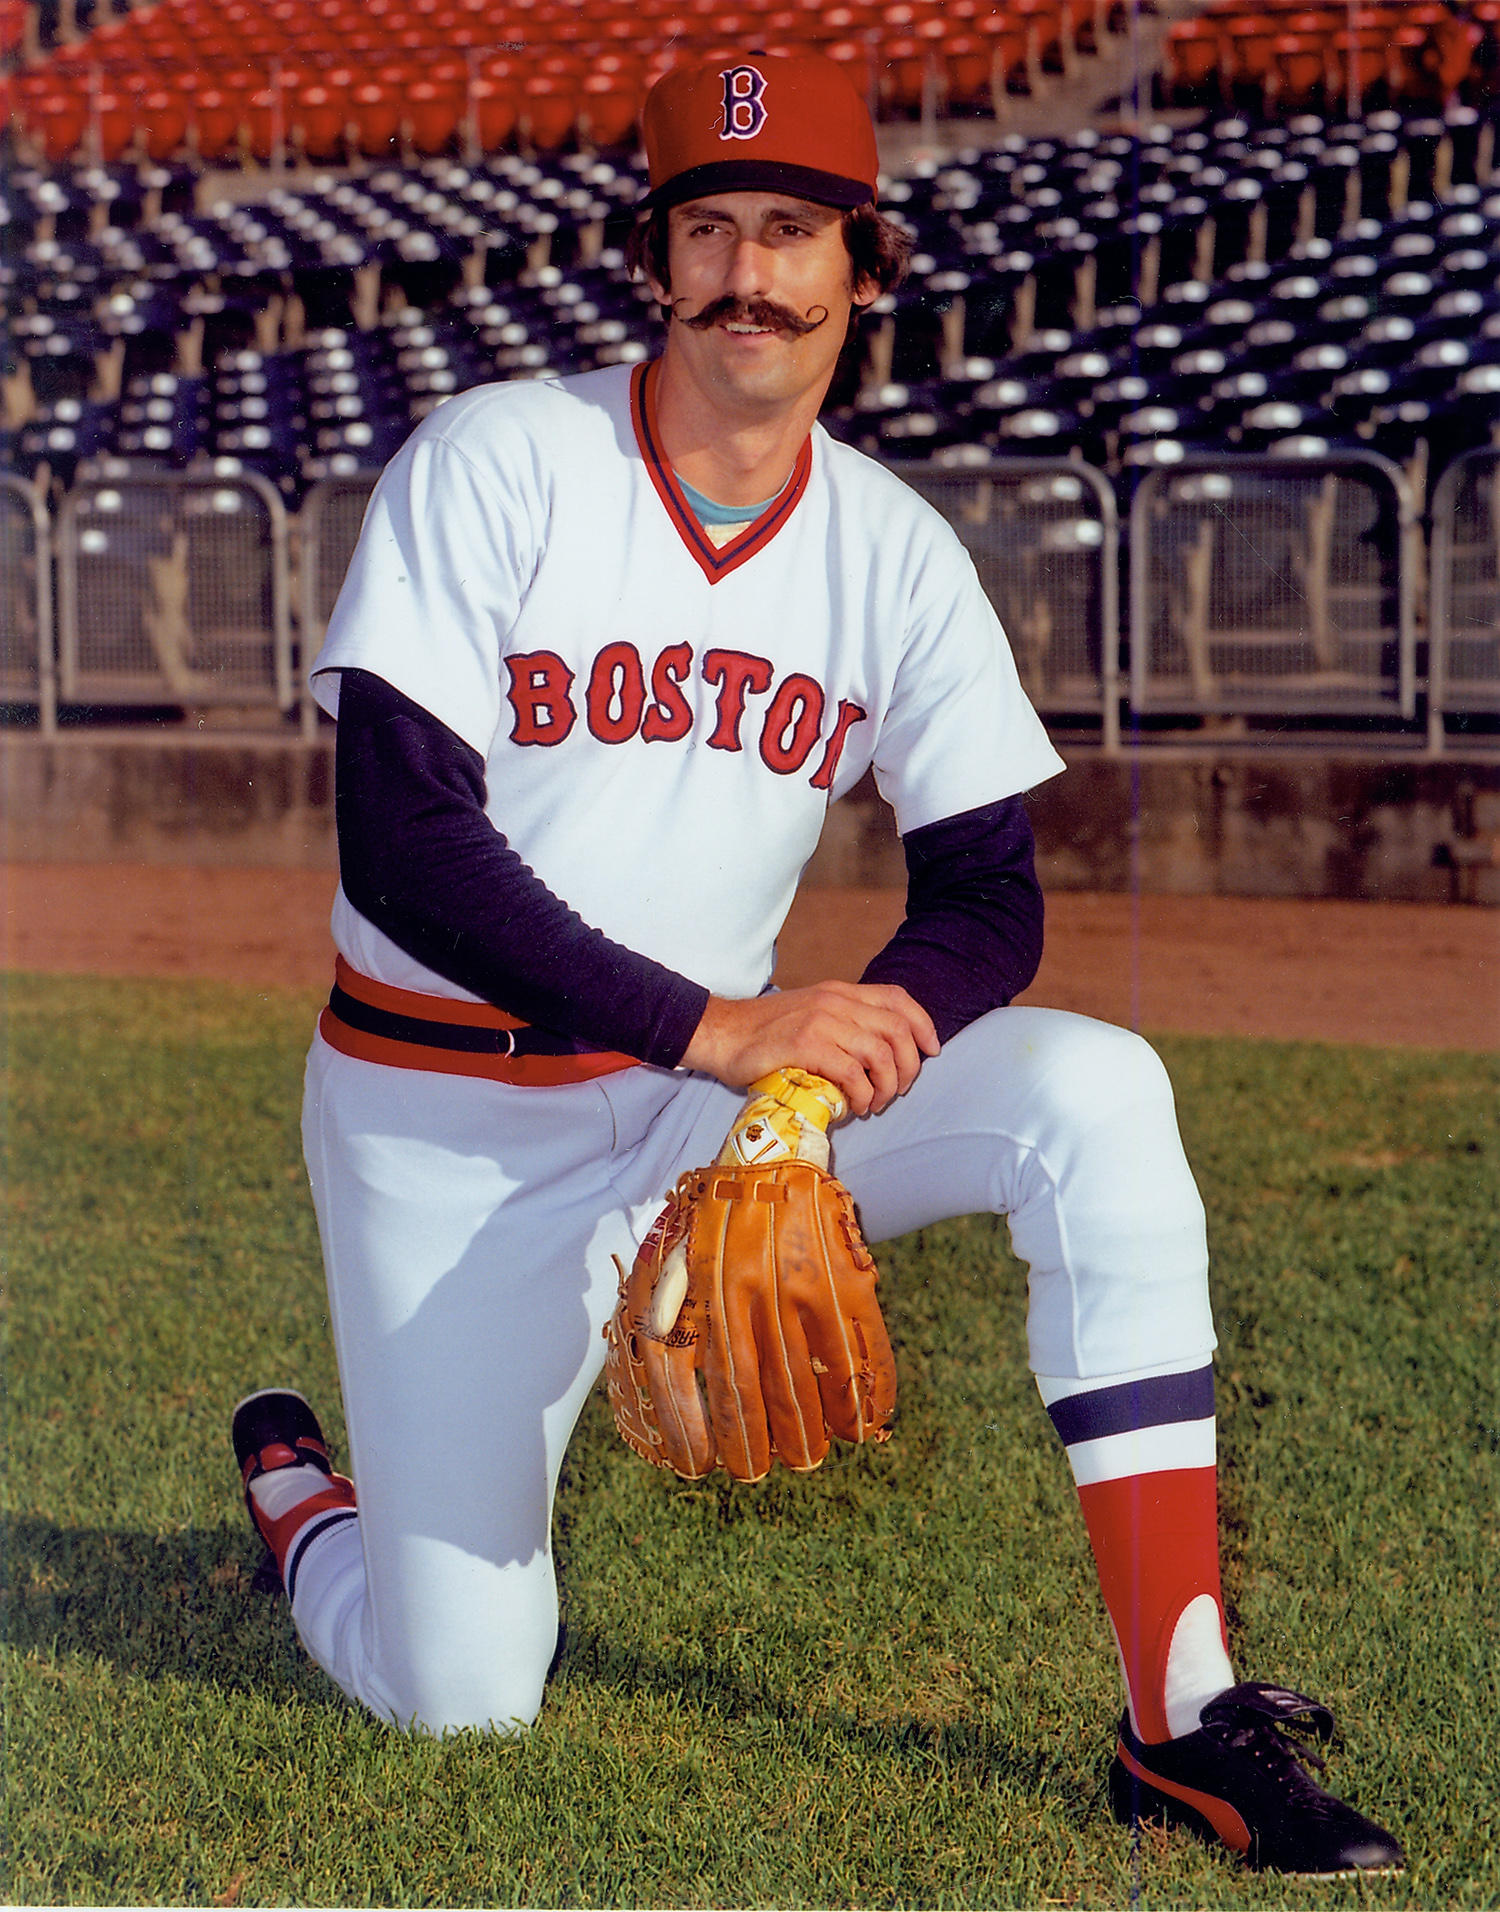 Doug McWilliams, a former photographer for Topps, captured the only known images of Rollie Fingers as a member of the Red Sox. McWilliams donated these images, and more, to the Hall of Fame in 2010. (Doug McWilliams / National Baseball Hall of Fame)